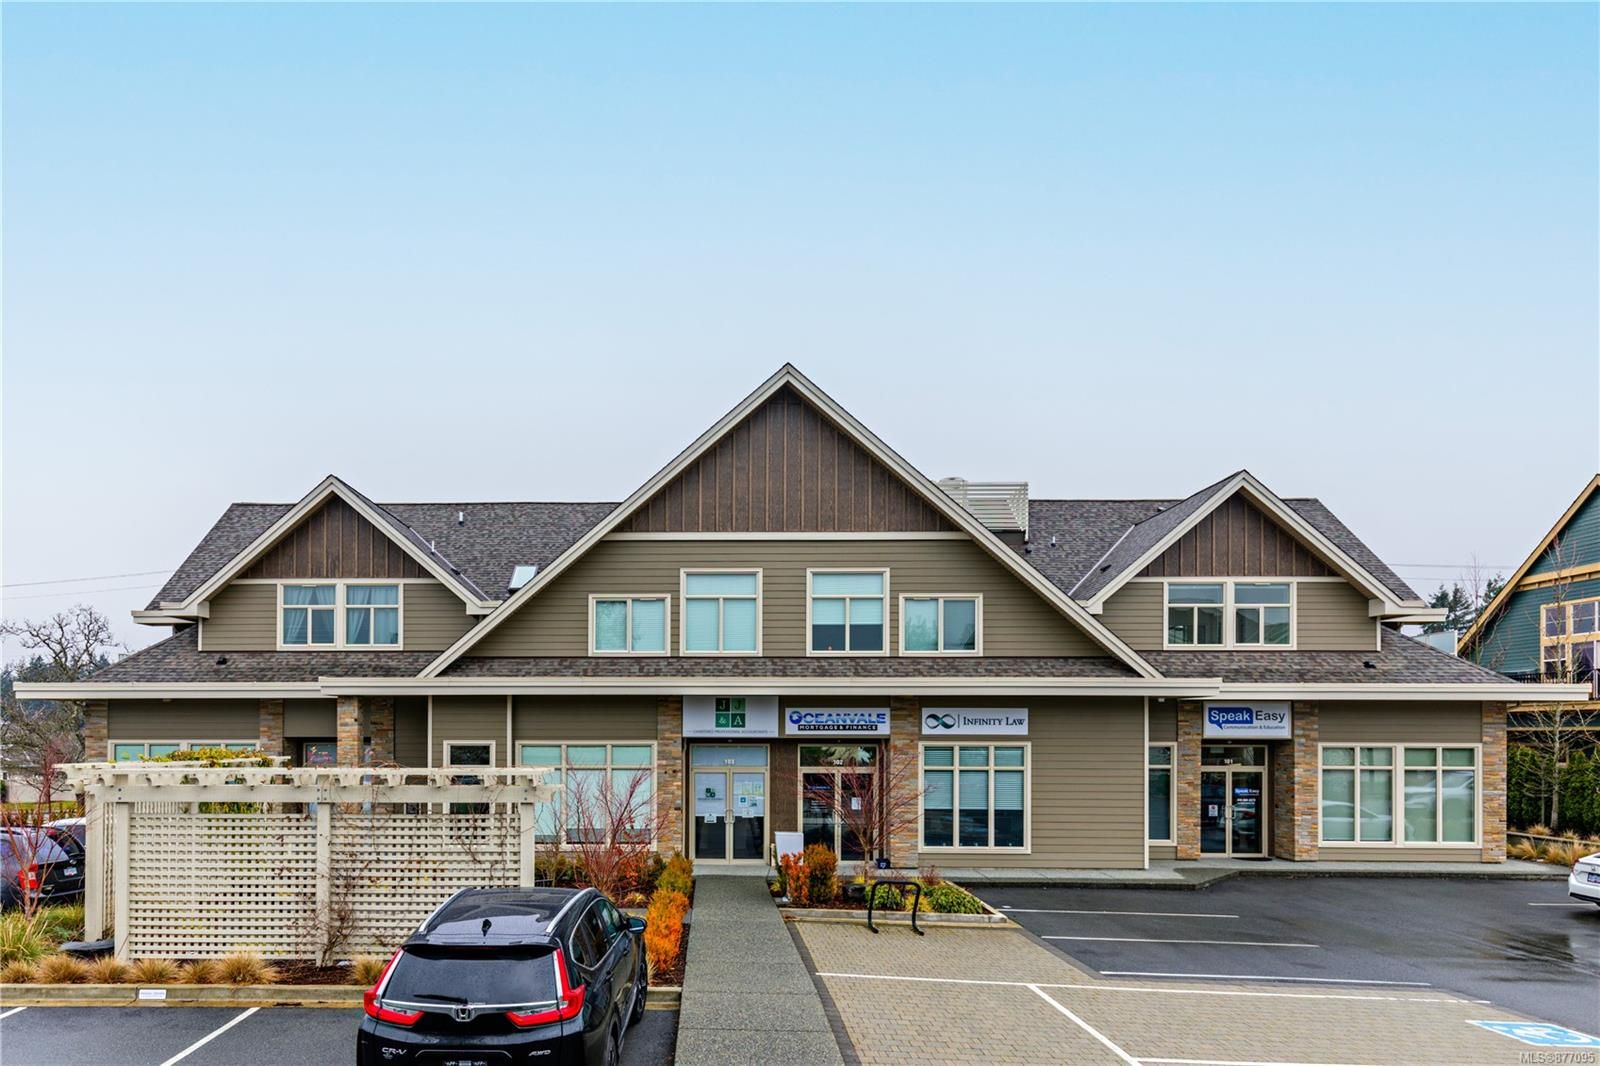 Main Photo: 206 4535 Uplands Dr in : Na Uplands Condo for sale (Nanaimo)  : MLS®# 877095